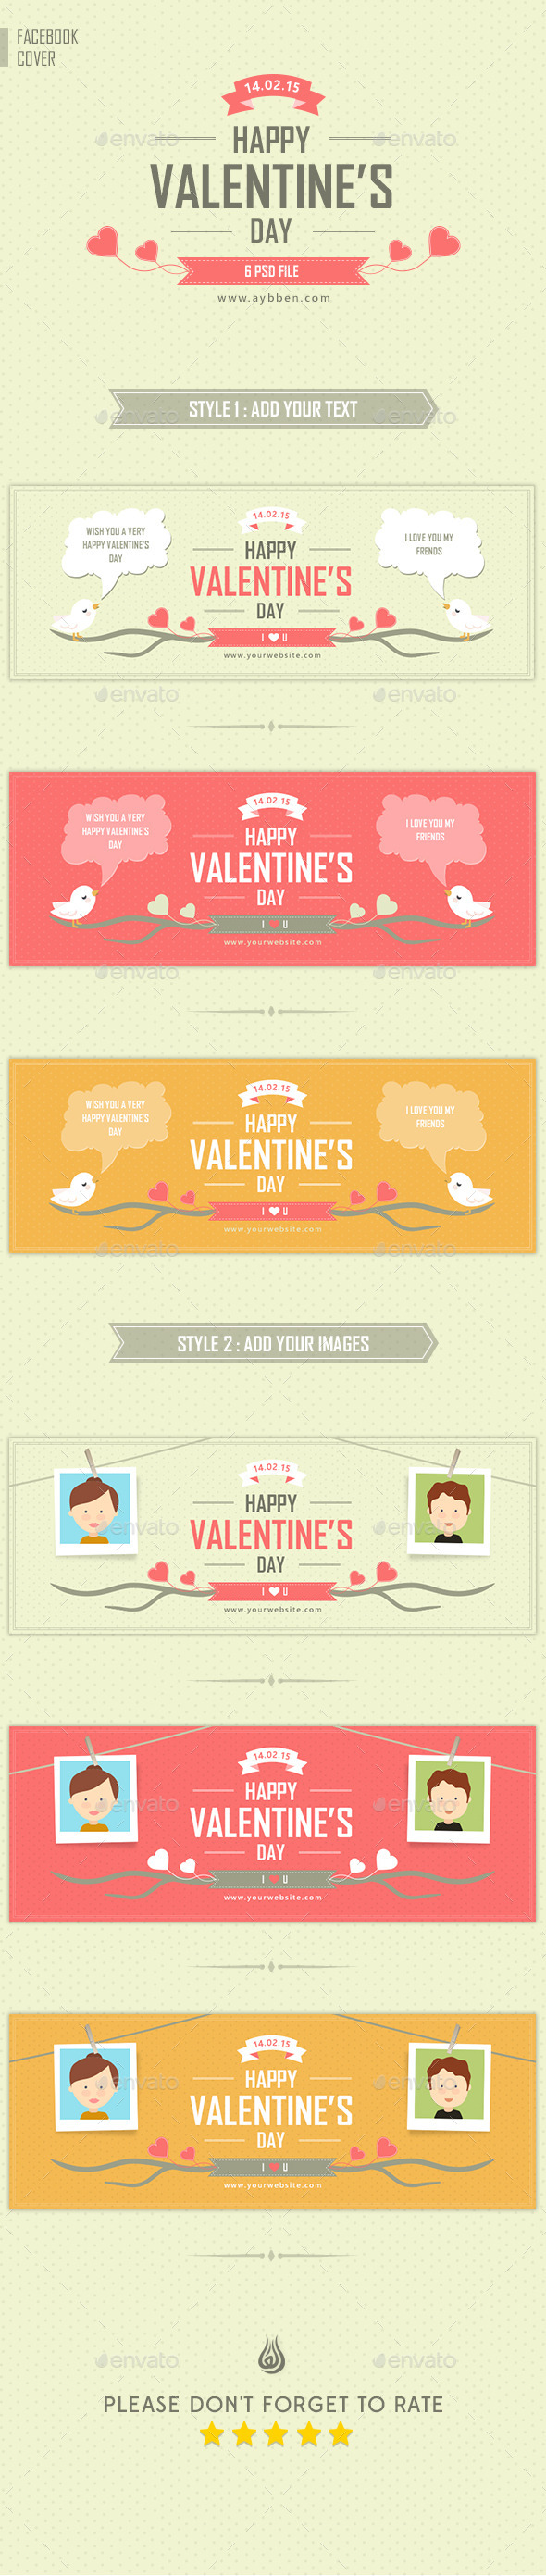 GraphicRiver Valentine s Day Timeline Cover 10368109